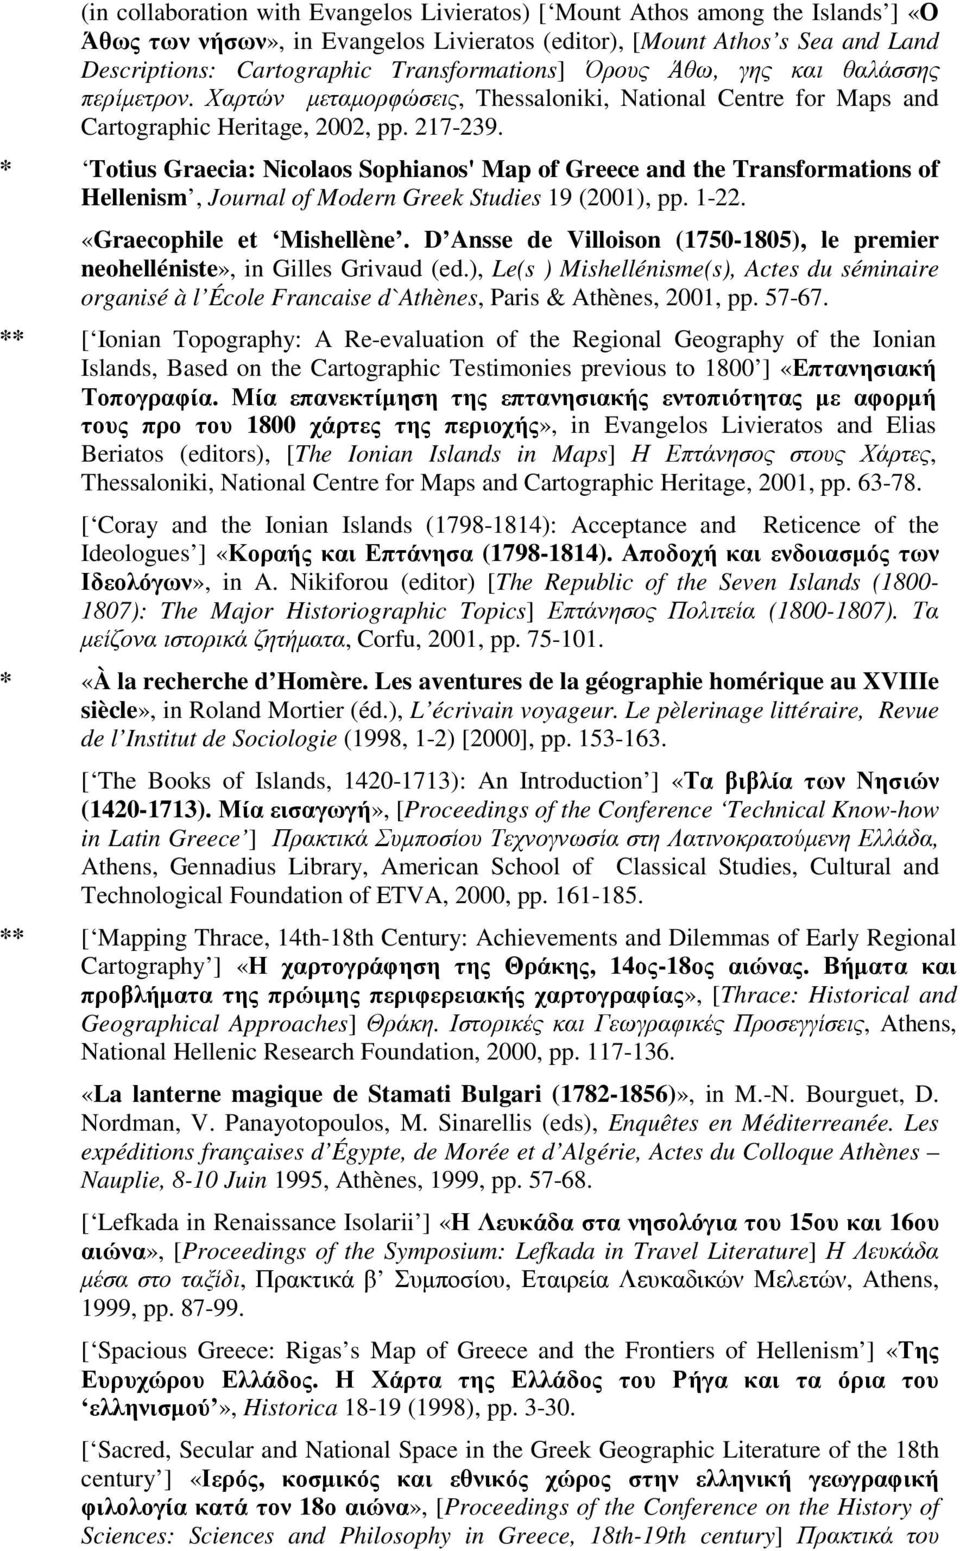 * Totius Graecia: Nicolaos Sophianos' Map of Greece and the Transformations of Hellenism, Journal of Modern Greek Studies 19 (2001), pp. 1-22. «Graecophile et Mishellène.